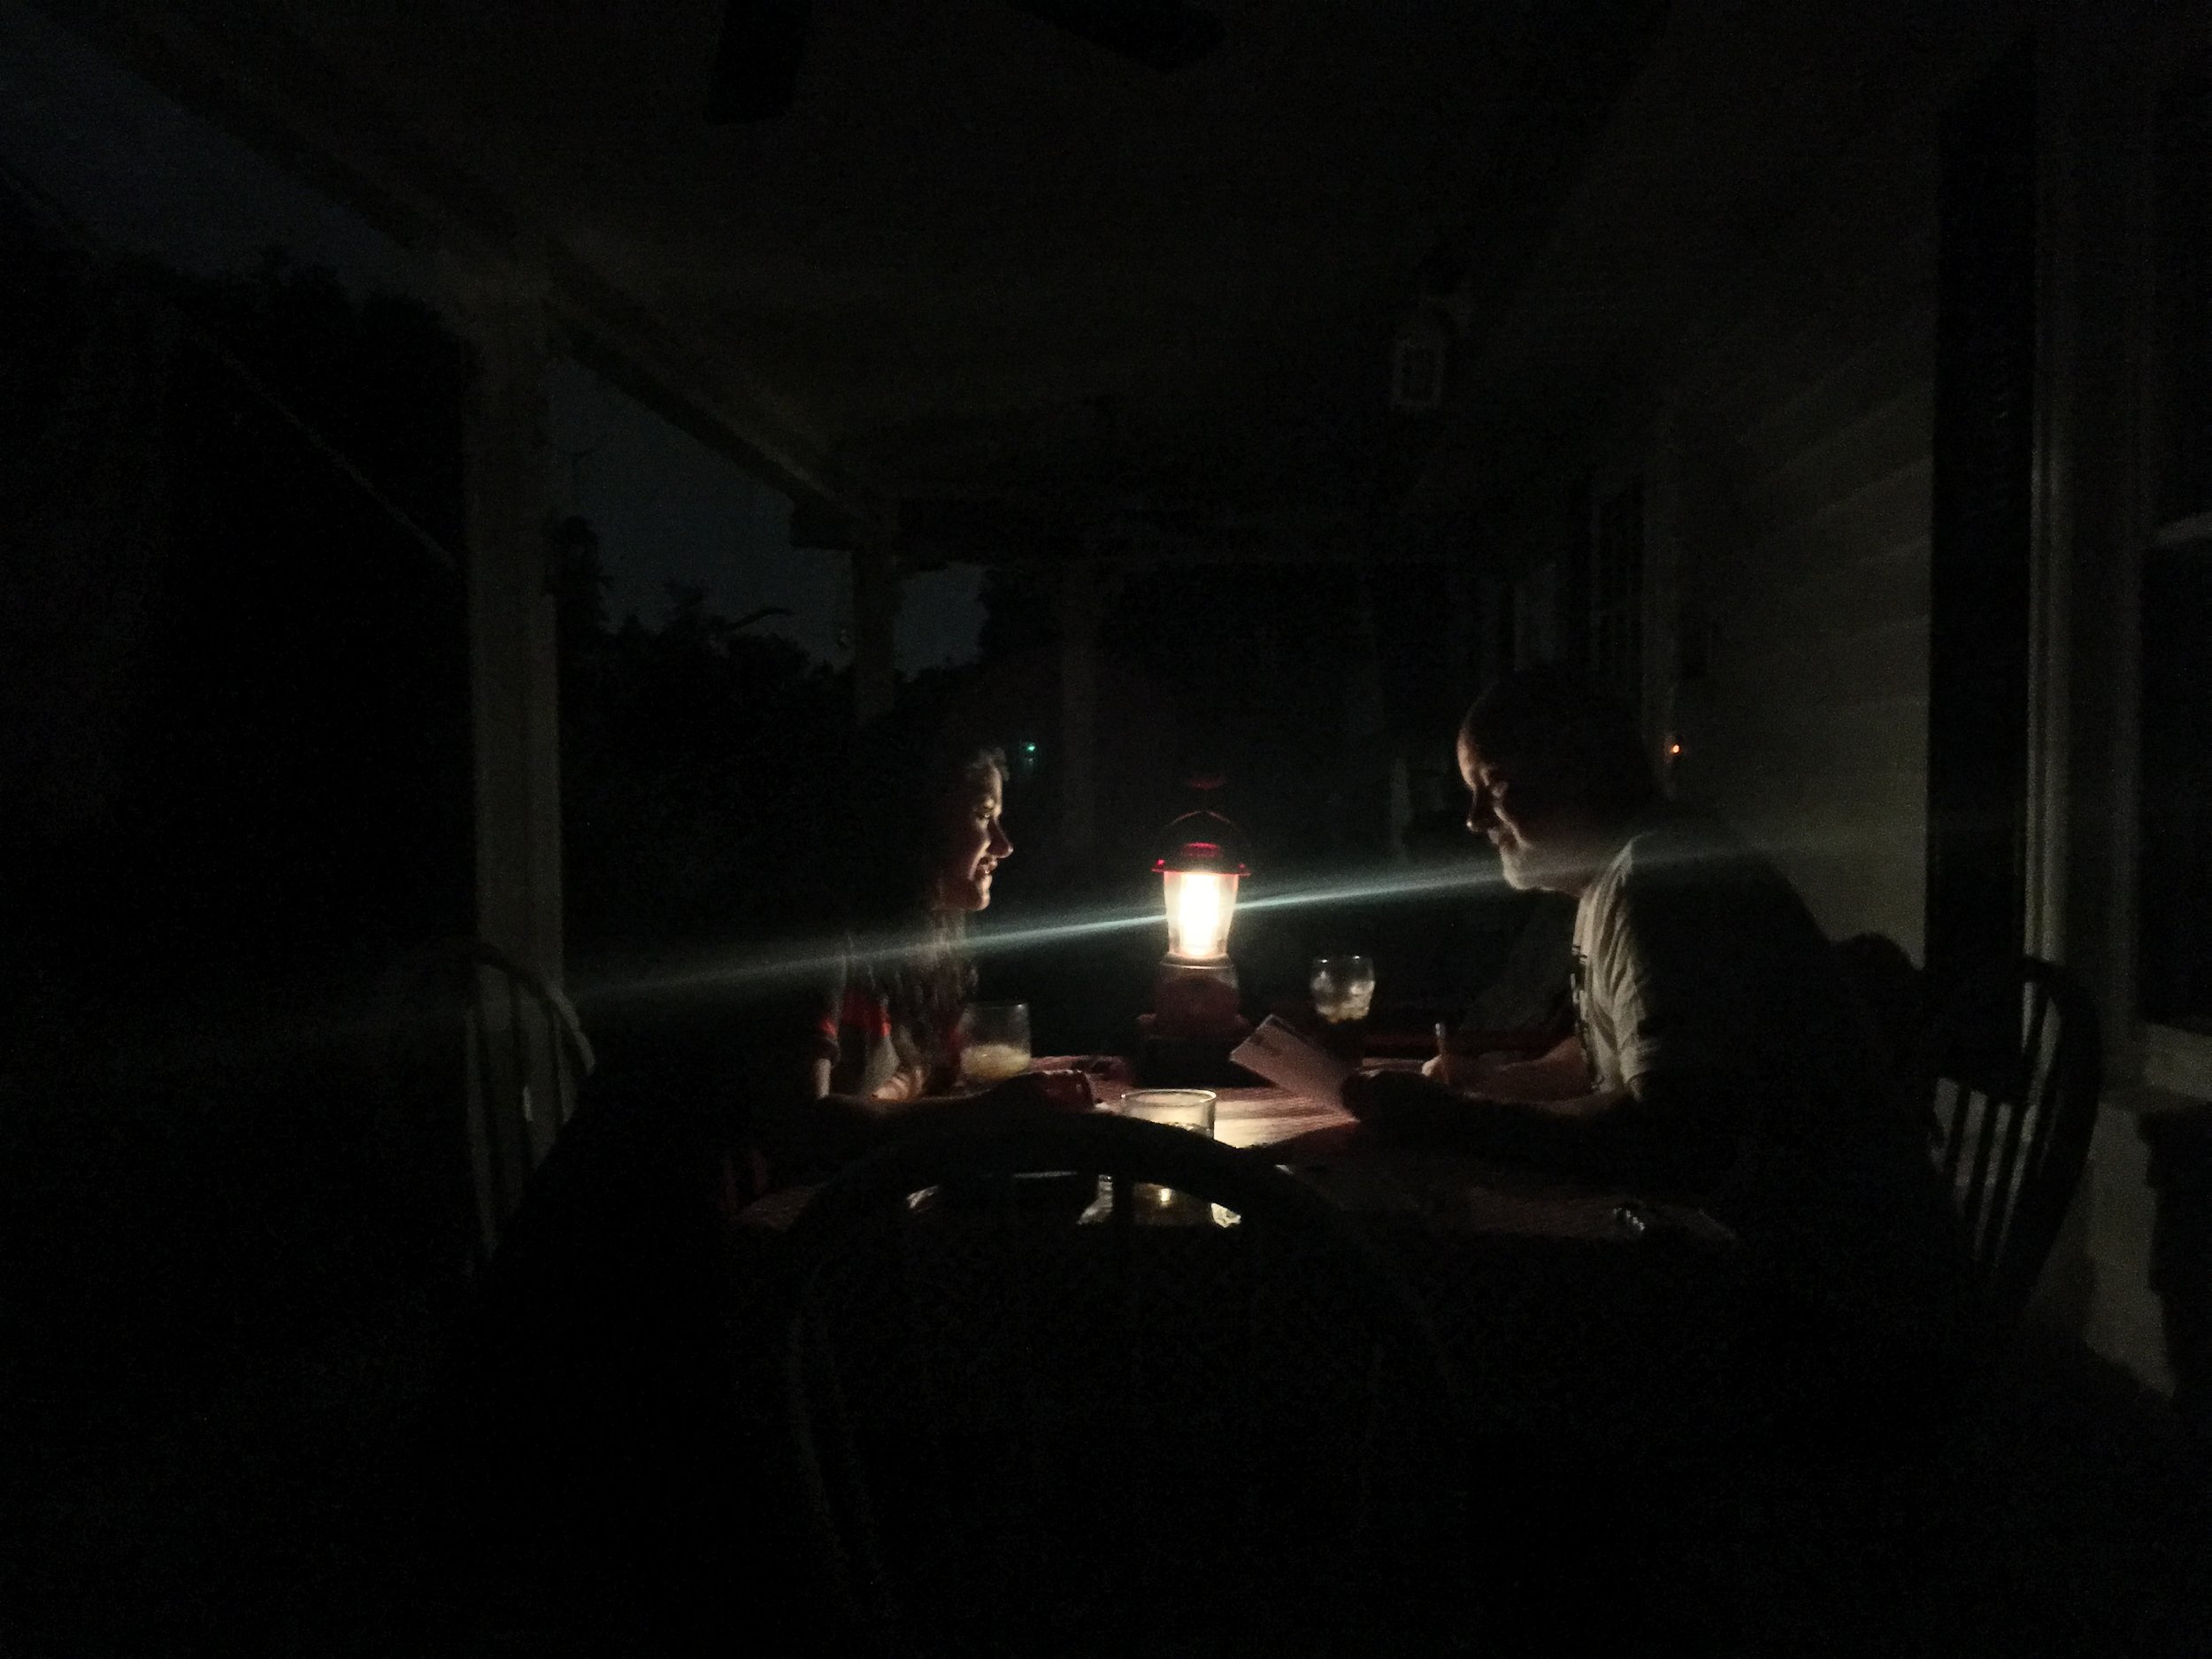 Taken on my iPhone with single light source. Dad kicking ass in Yahtzee.